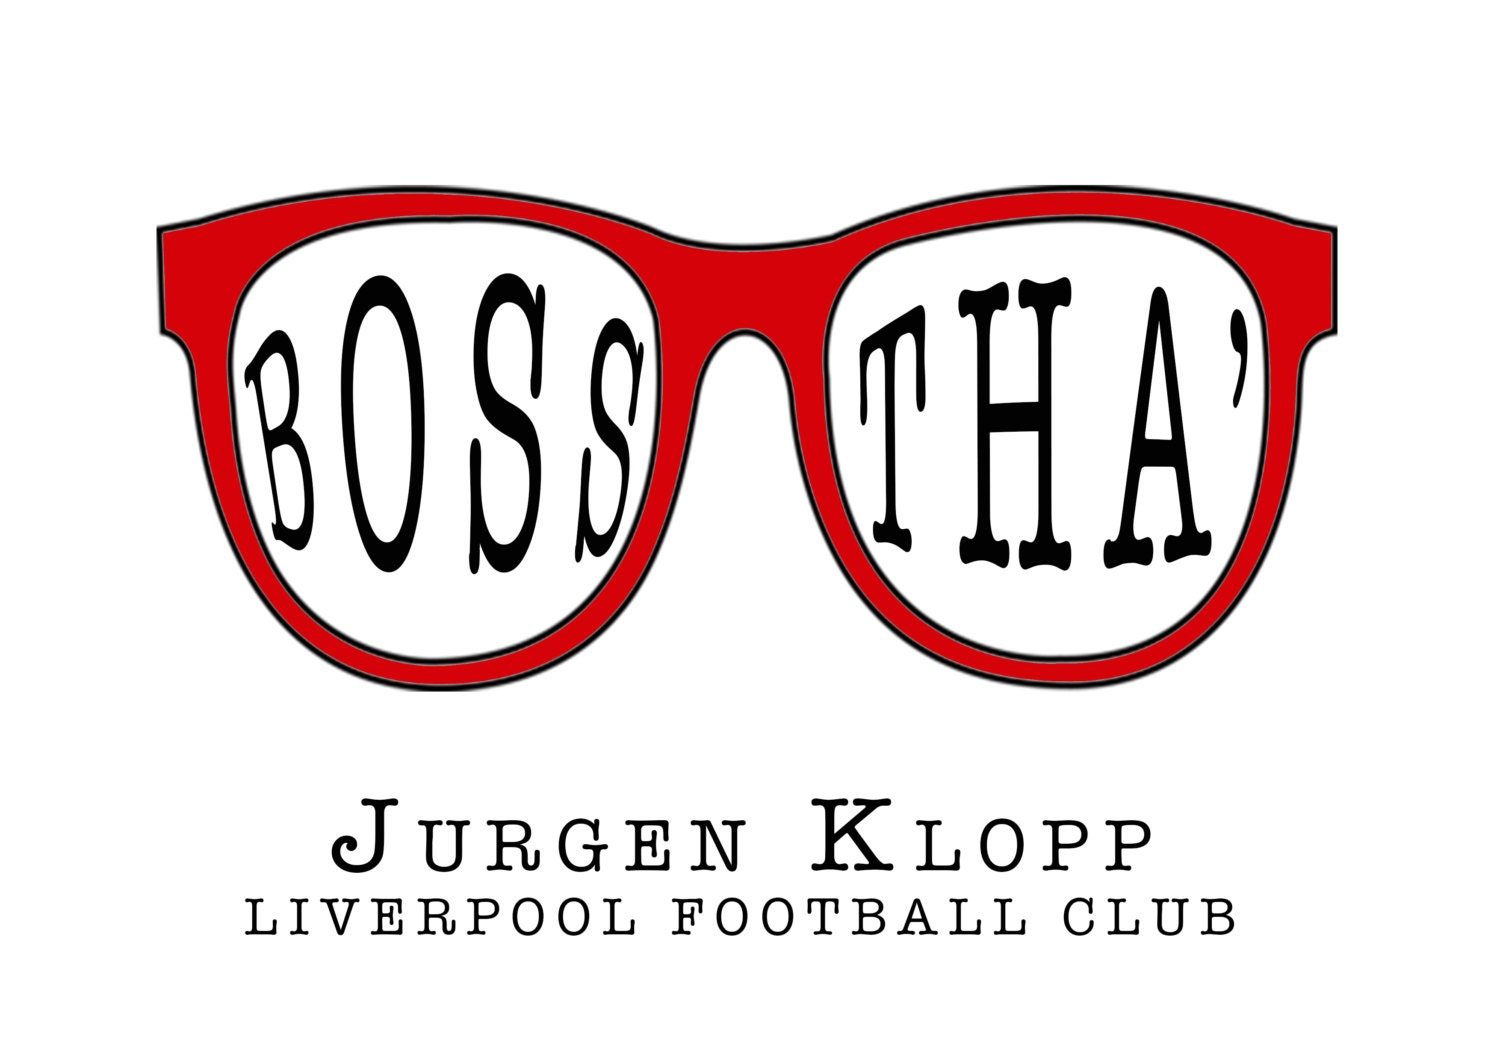 Jurgen Klopp Liverpool Fc Pop Art  Different Sized Files For You To